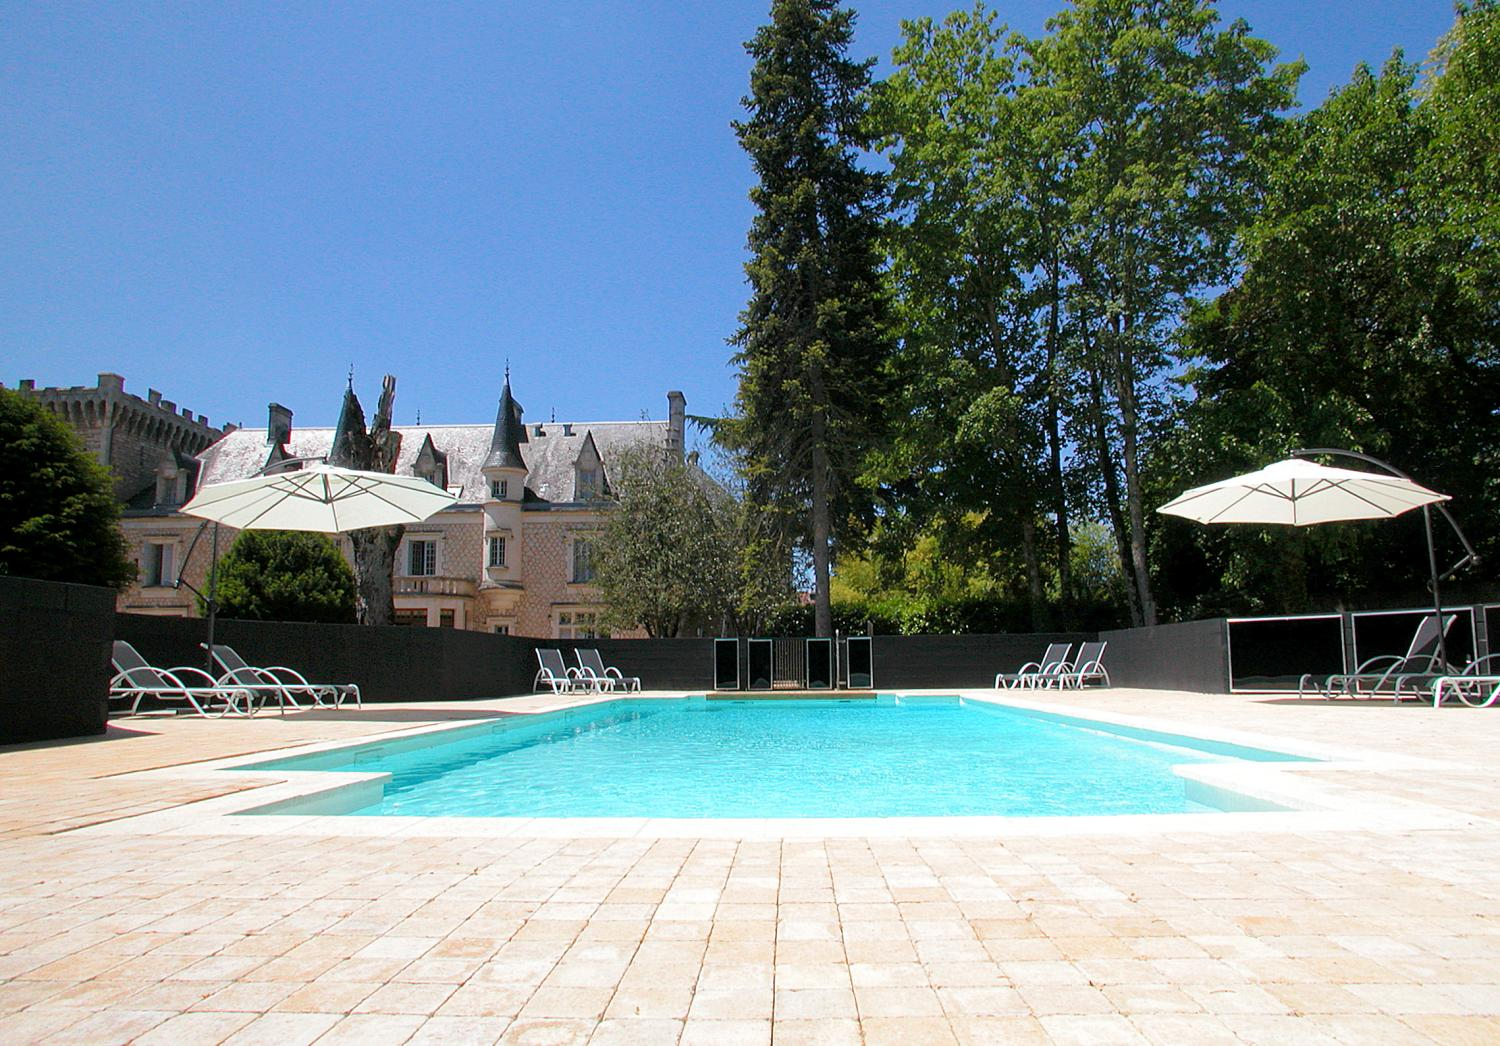 Outdoor Pool 1, Chateau de la Couronne, Vendee Charente, Angouleme.